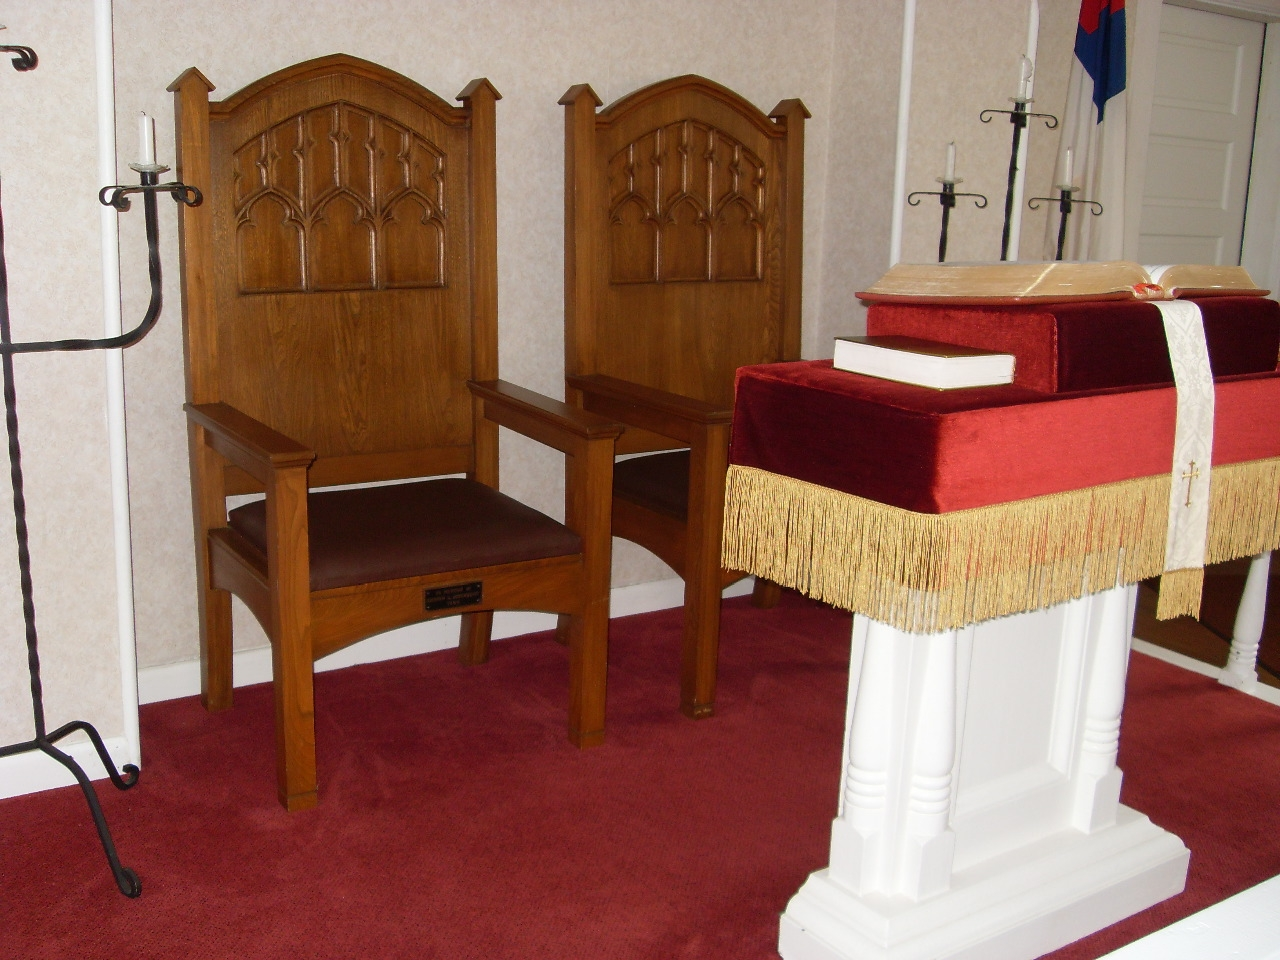 Inside Jacksonport United Methodist Church - the Pulpit